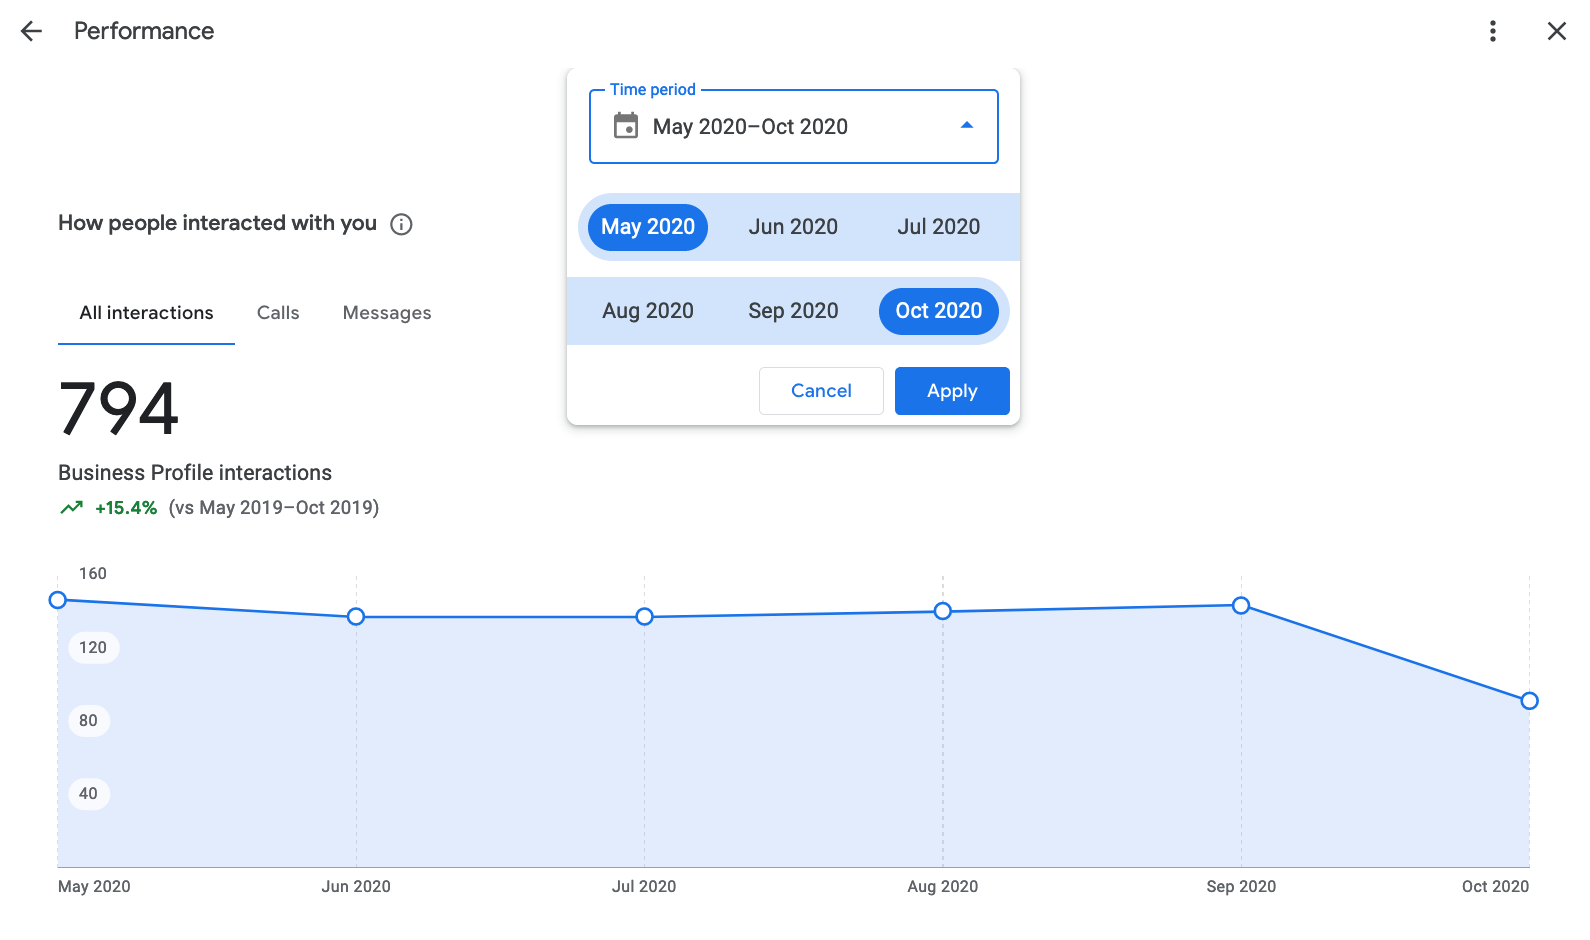 Performance reporting for Google Business listings enables you to see how many people interacted with your listing over a 6-month period.